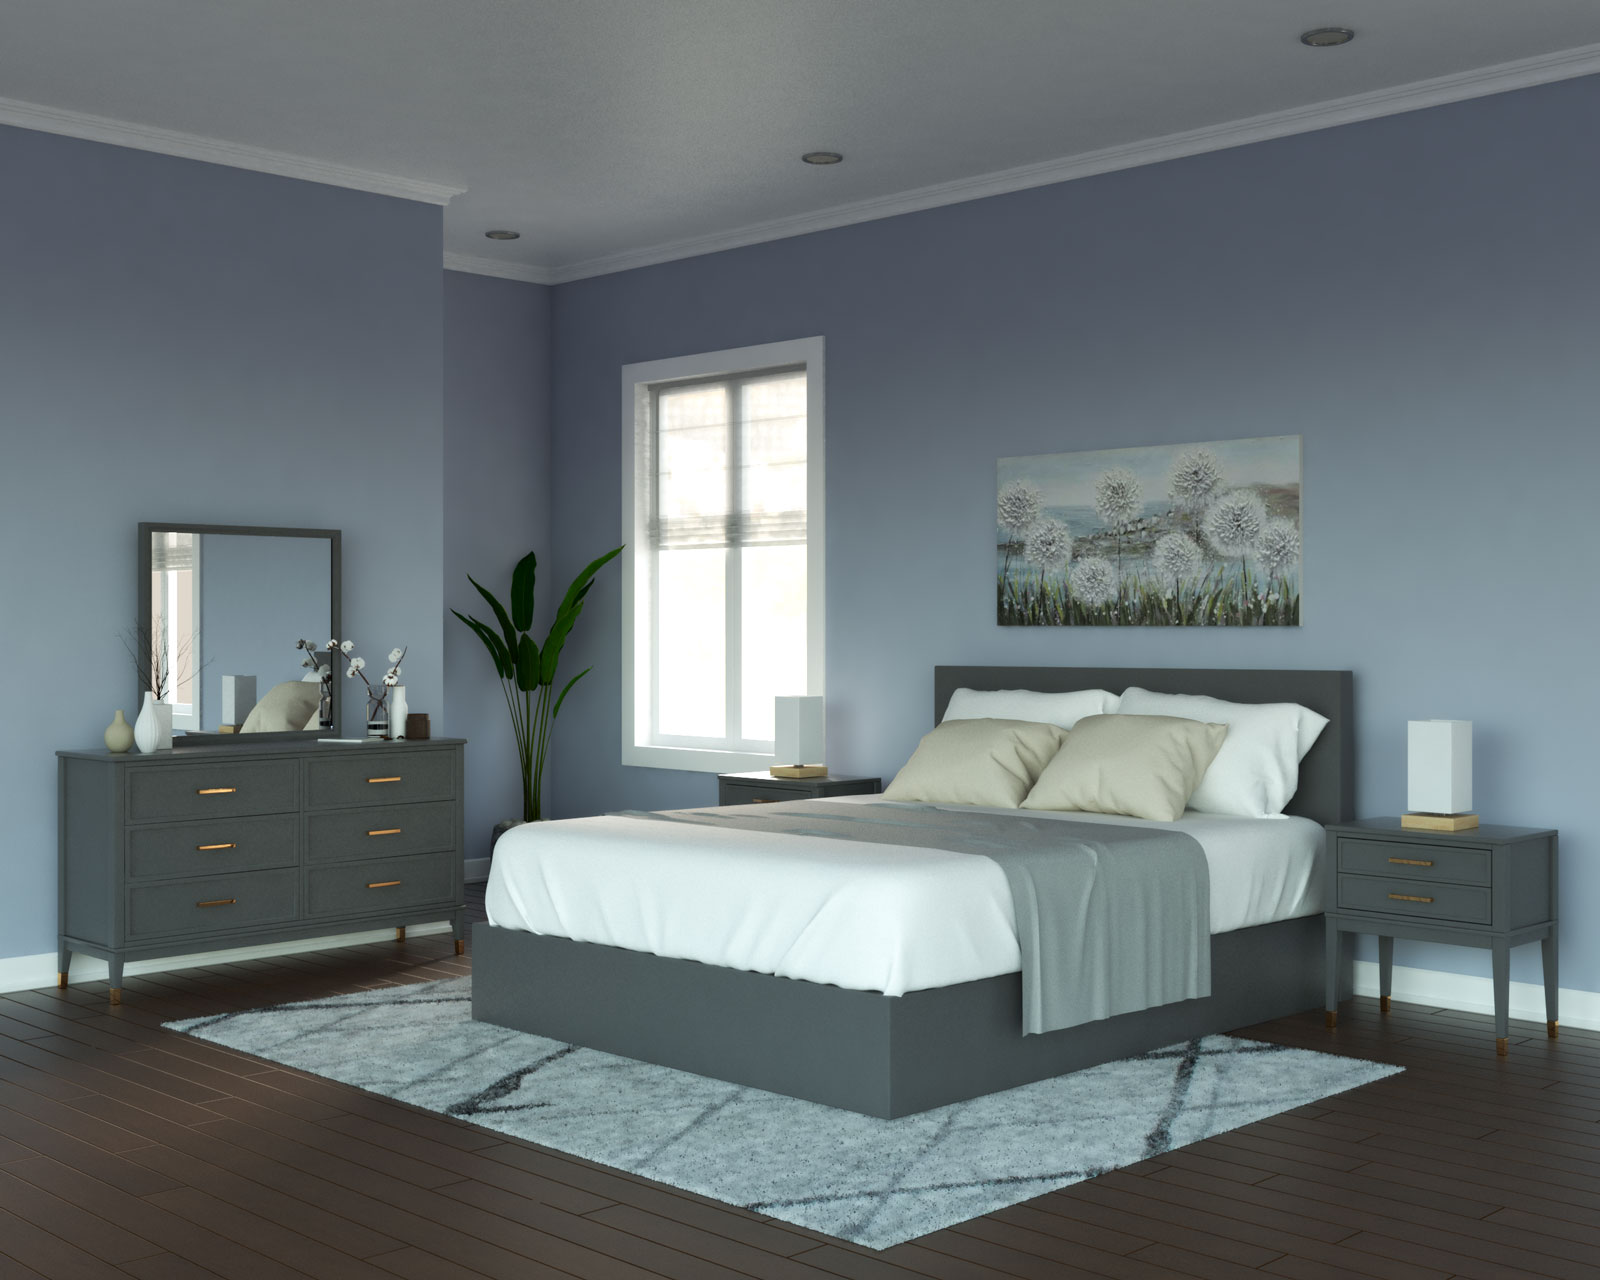 Slate blue walls with gray furniture